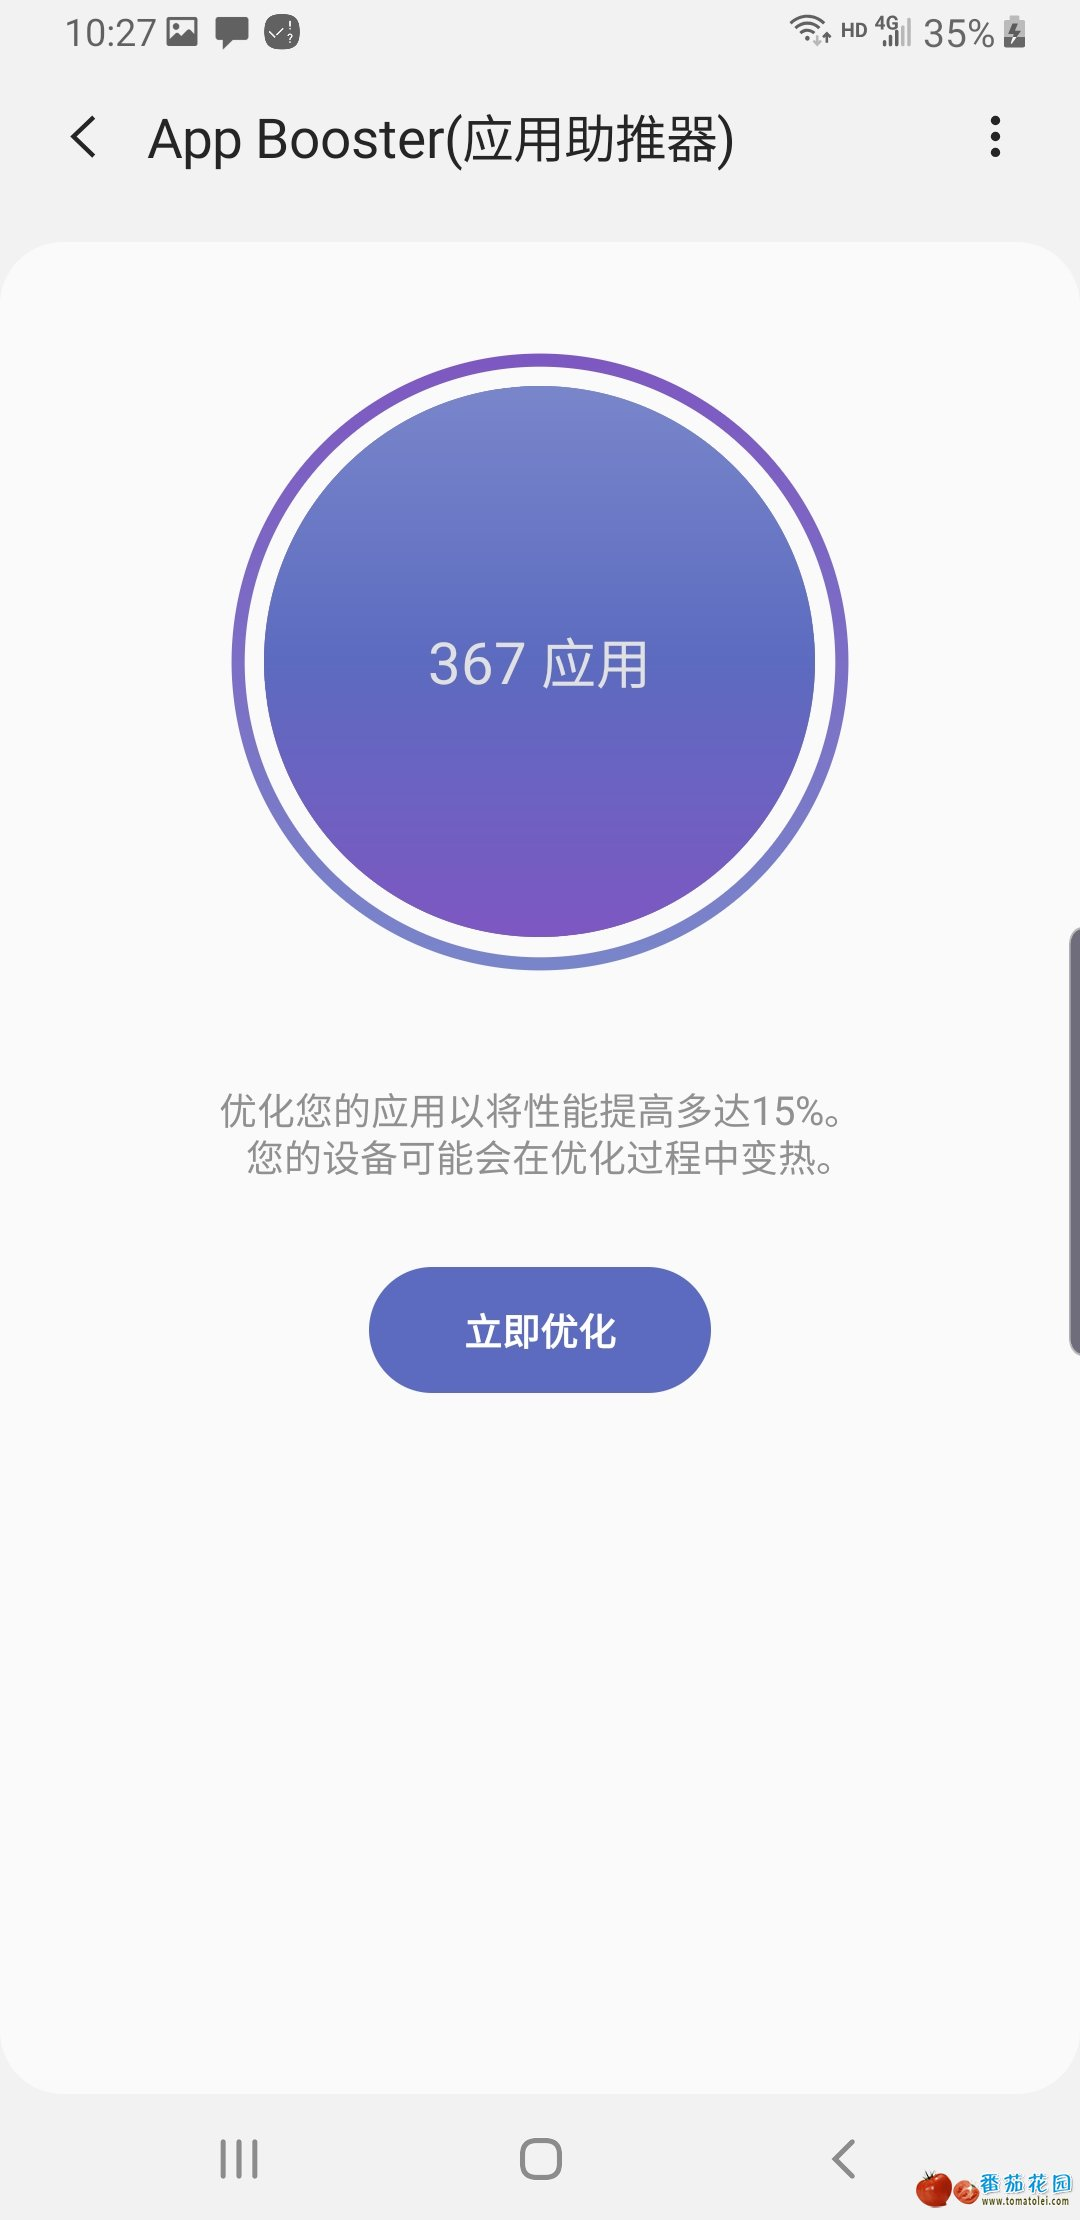 Screenshot_20191119-102733_App Booster.jpg